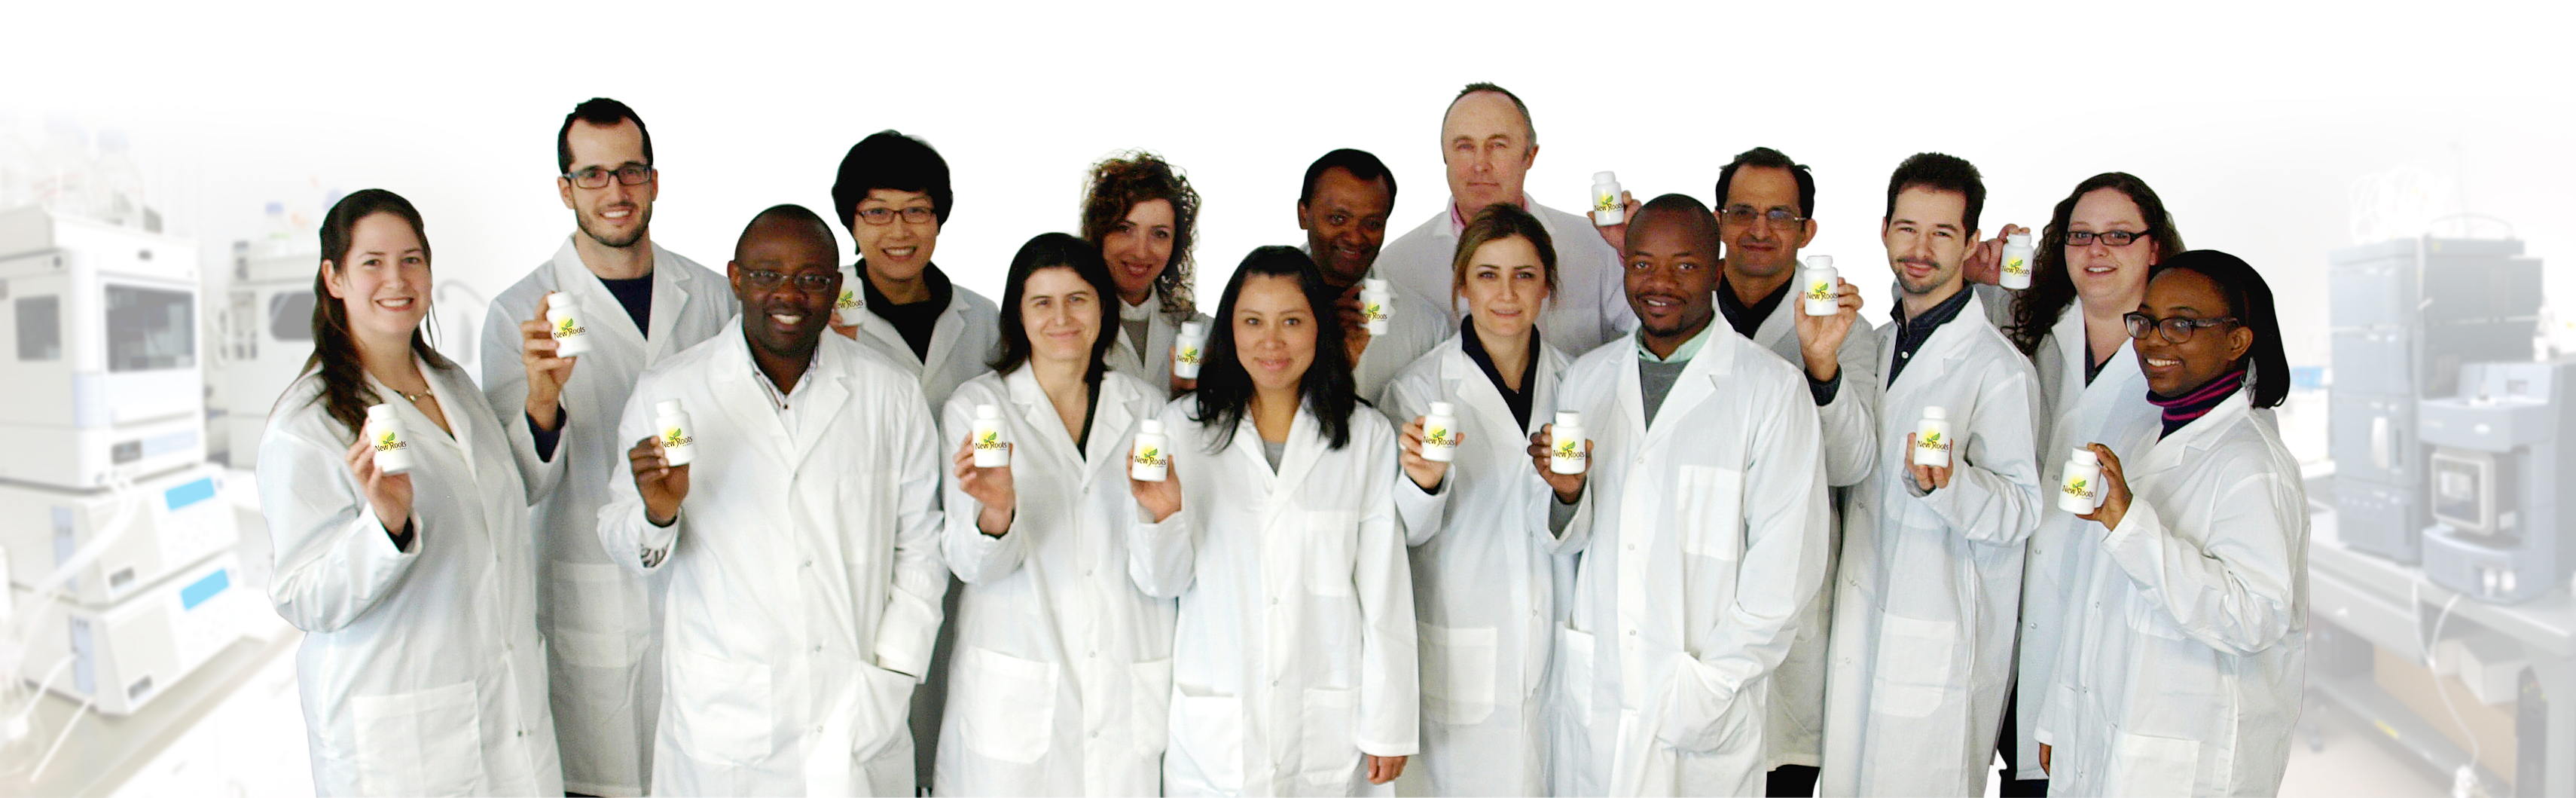 lab picture of scientists